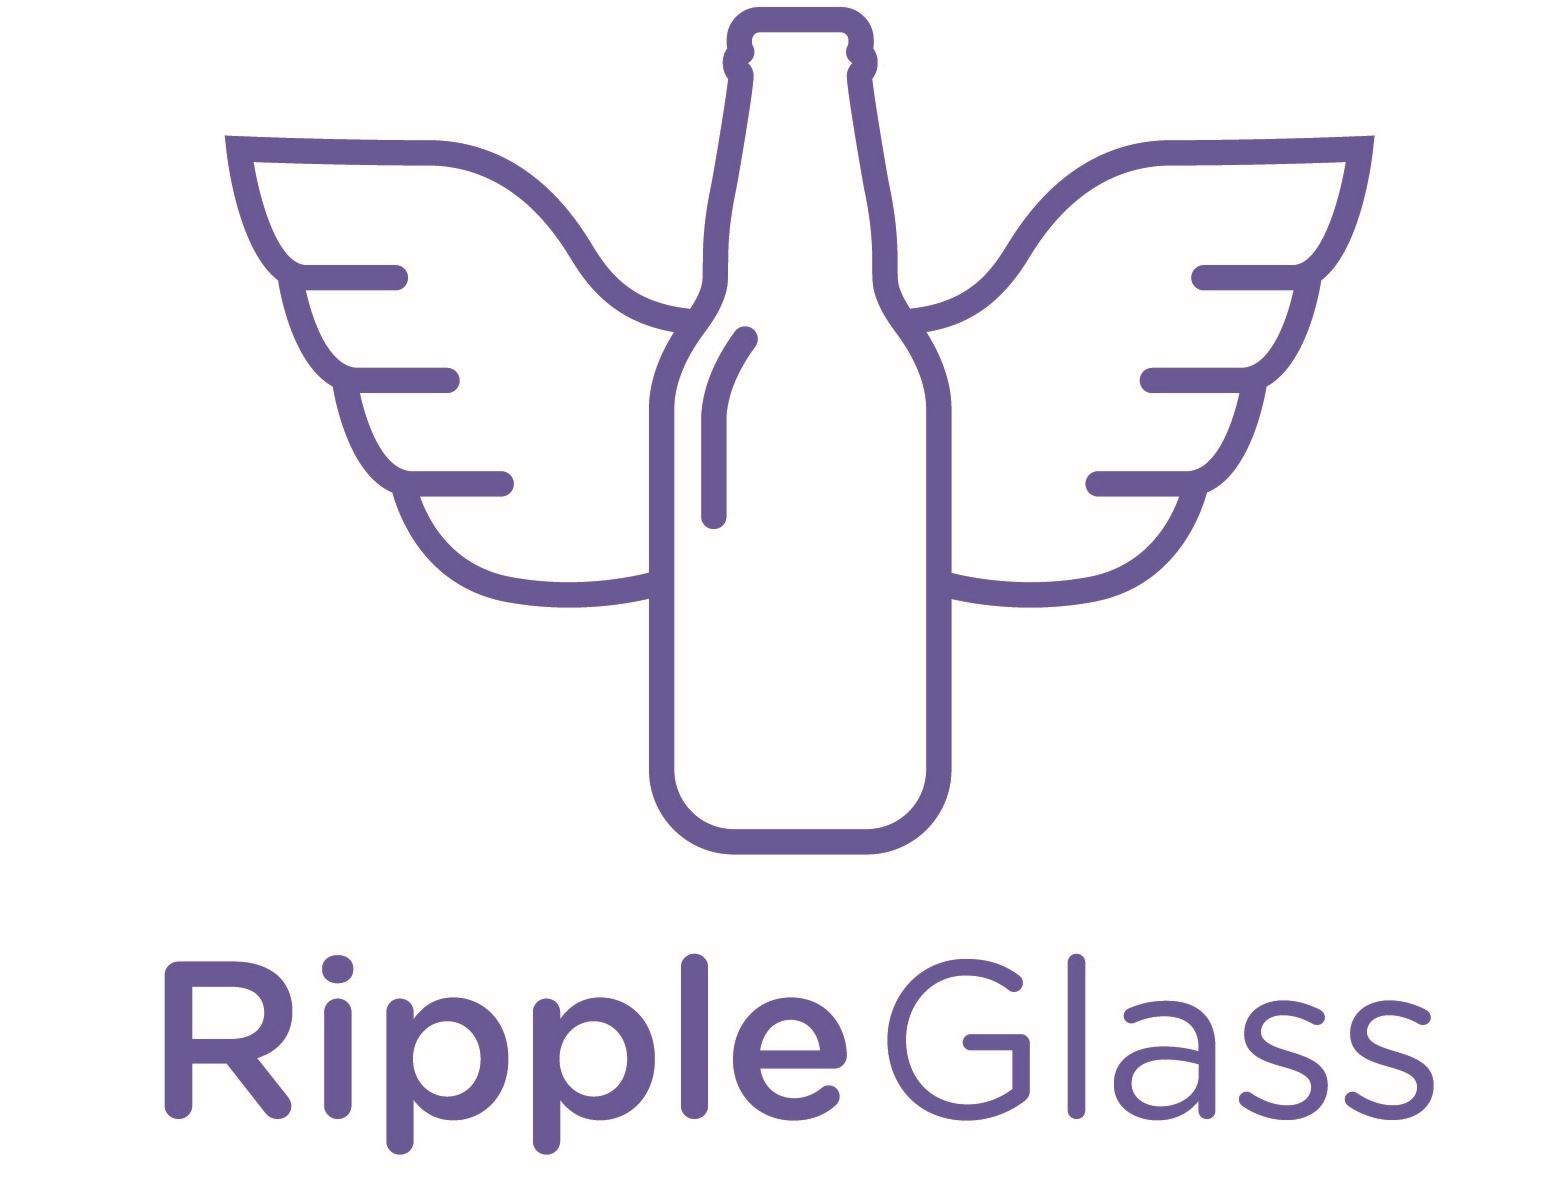 Ripple GLass Purple Logo - Centered (Cropped)